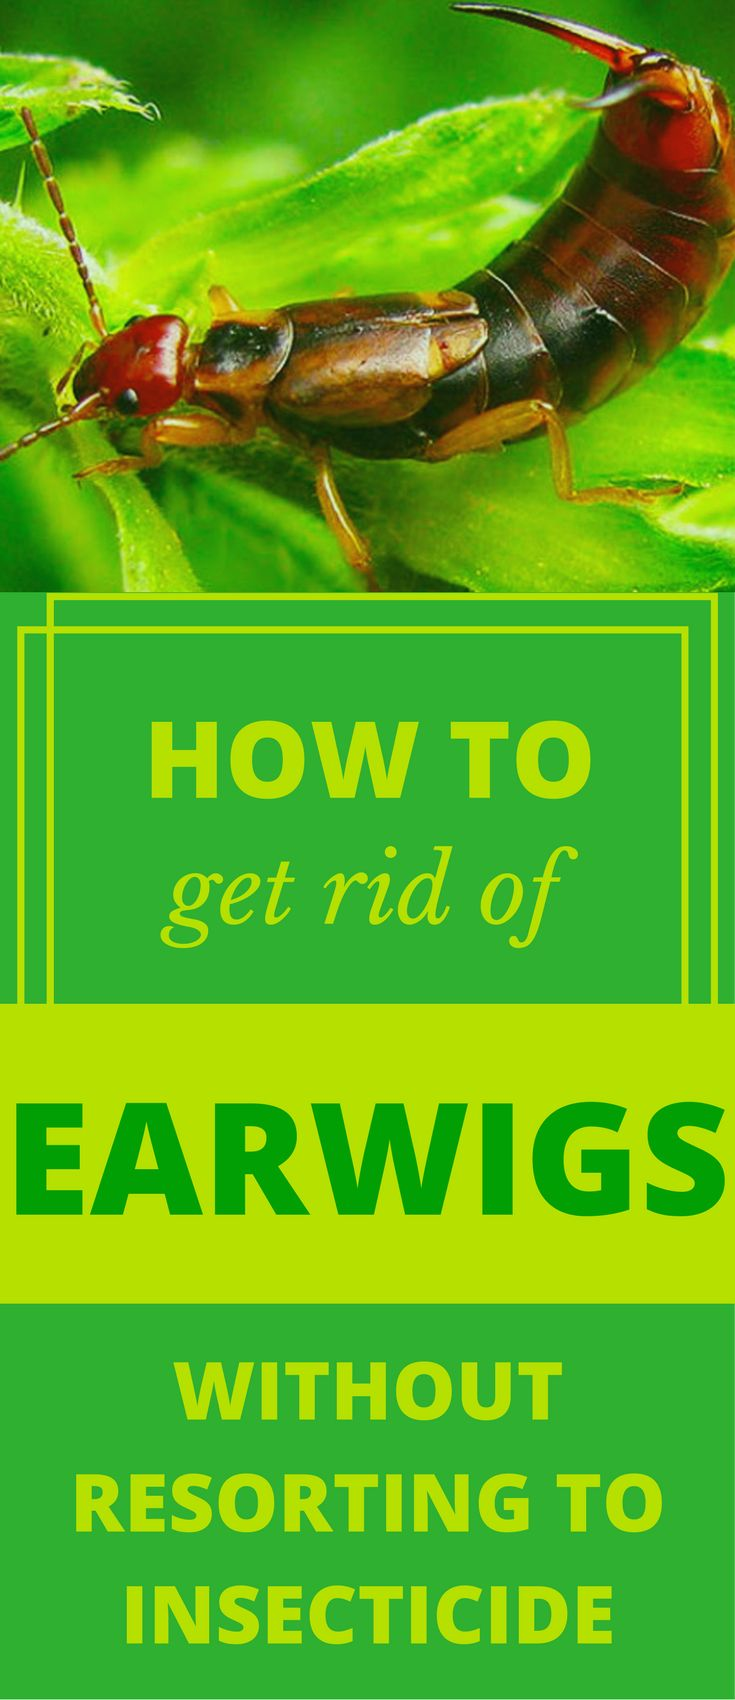 If the problem you are facing is called earwigs, the answer is very simple. Read this article to learn how to get rid of earwigs.